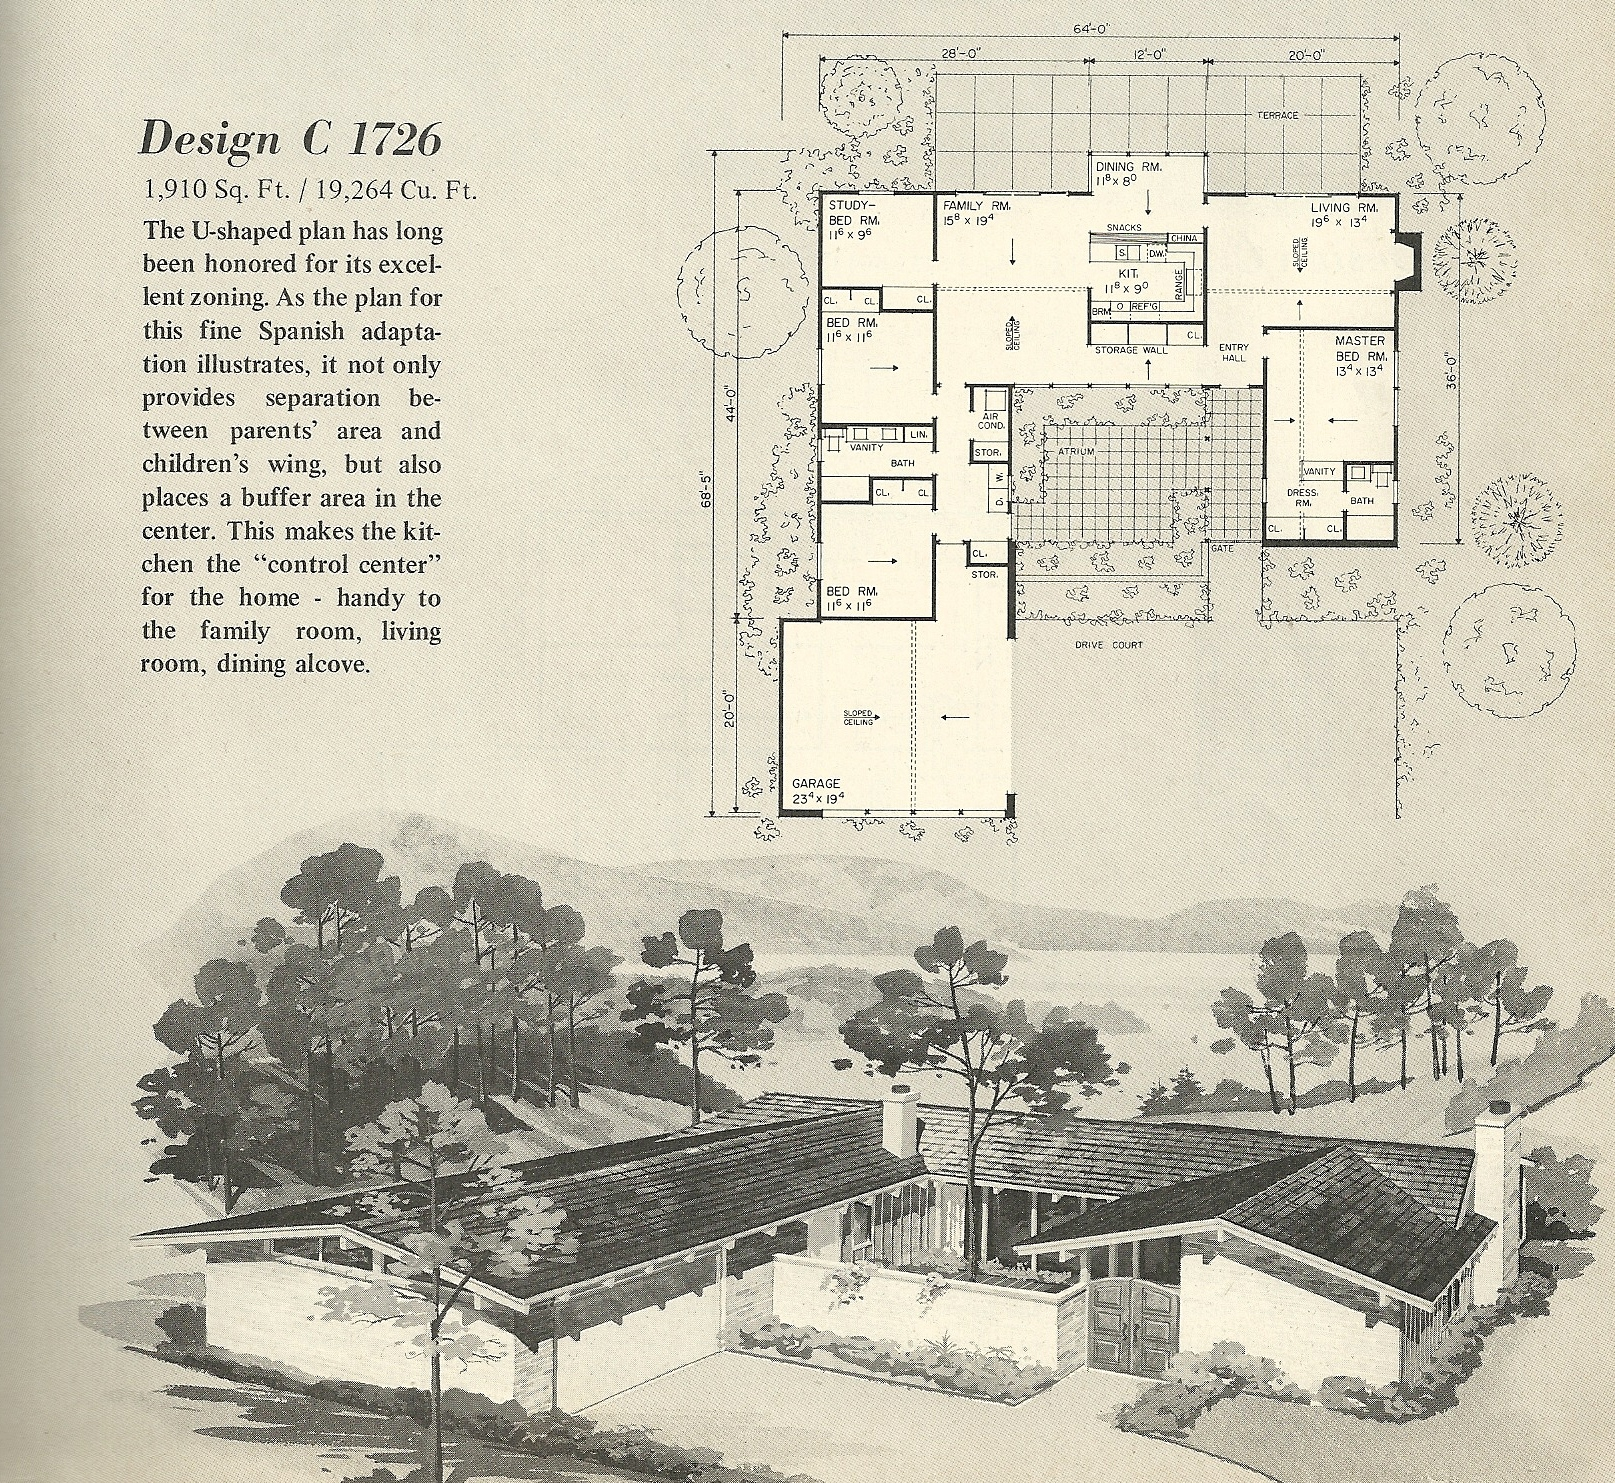 Retro Home Design 1000 43 Images About Houseplans I Like On Pinterest Plan